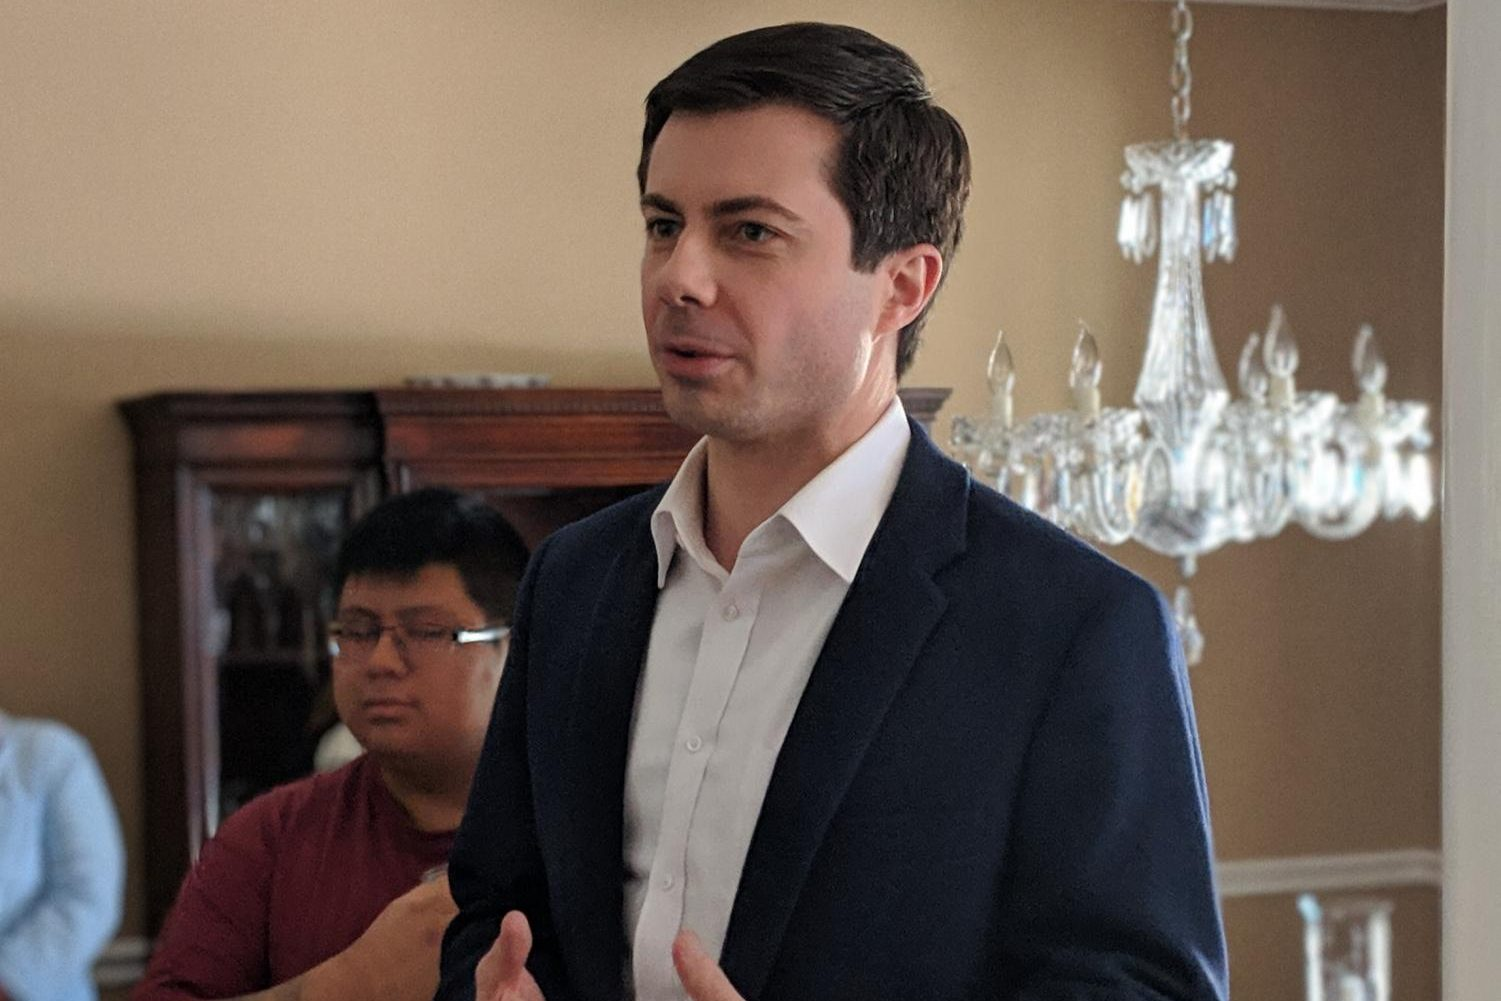 Pete Buttigieg, the 37 year old mayor running for the Democratic nomination.